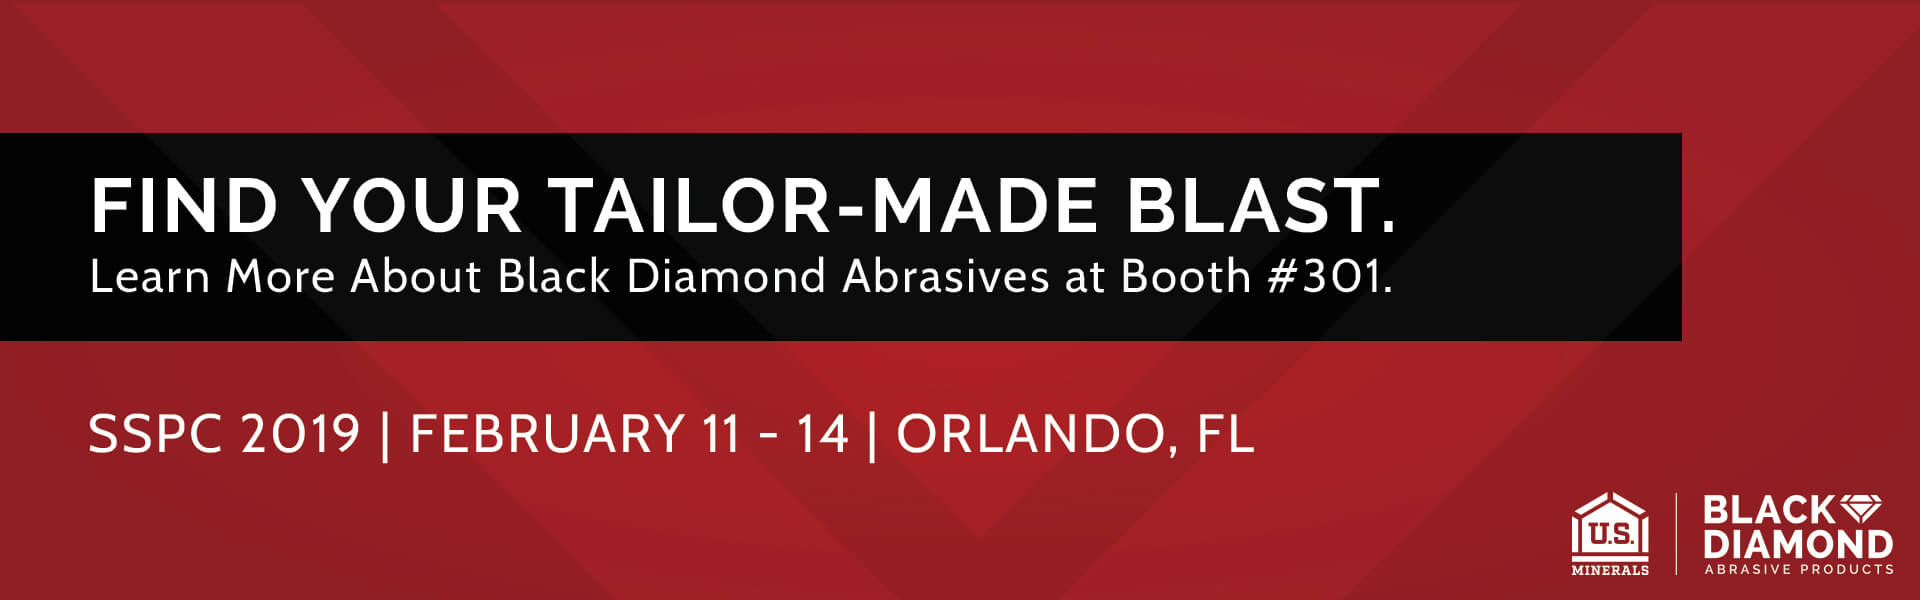 Learn More About Black Diamond at SSPC 2019